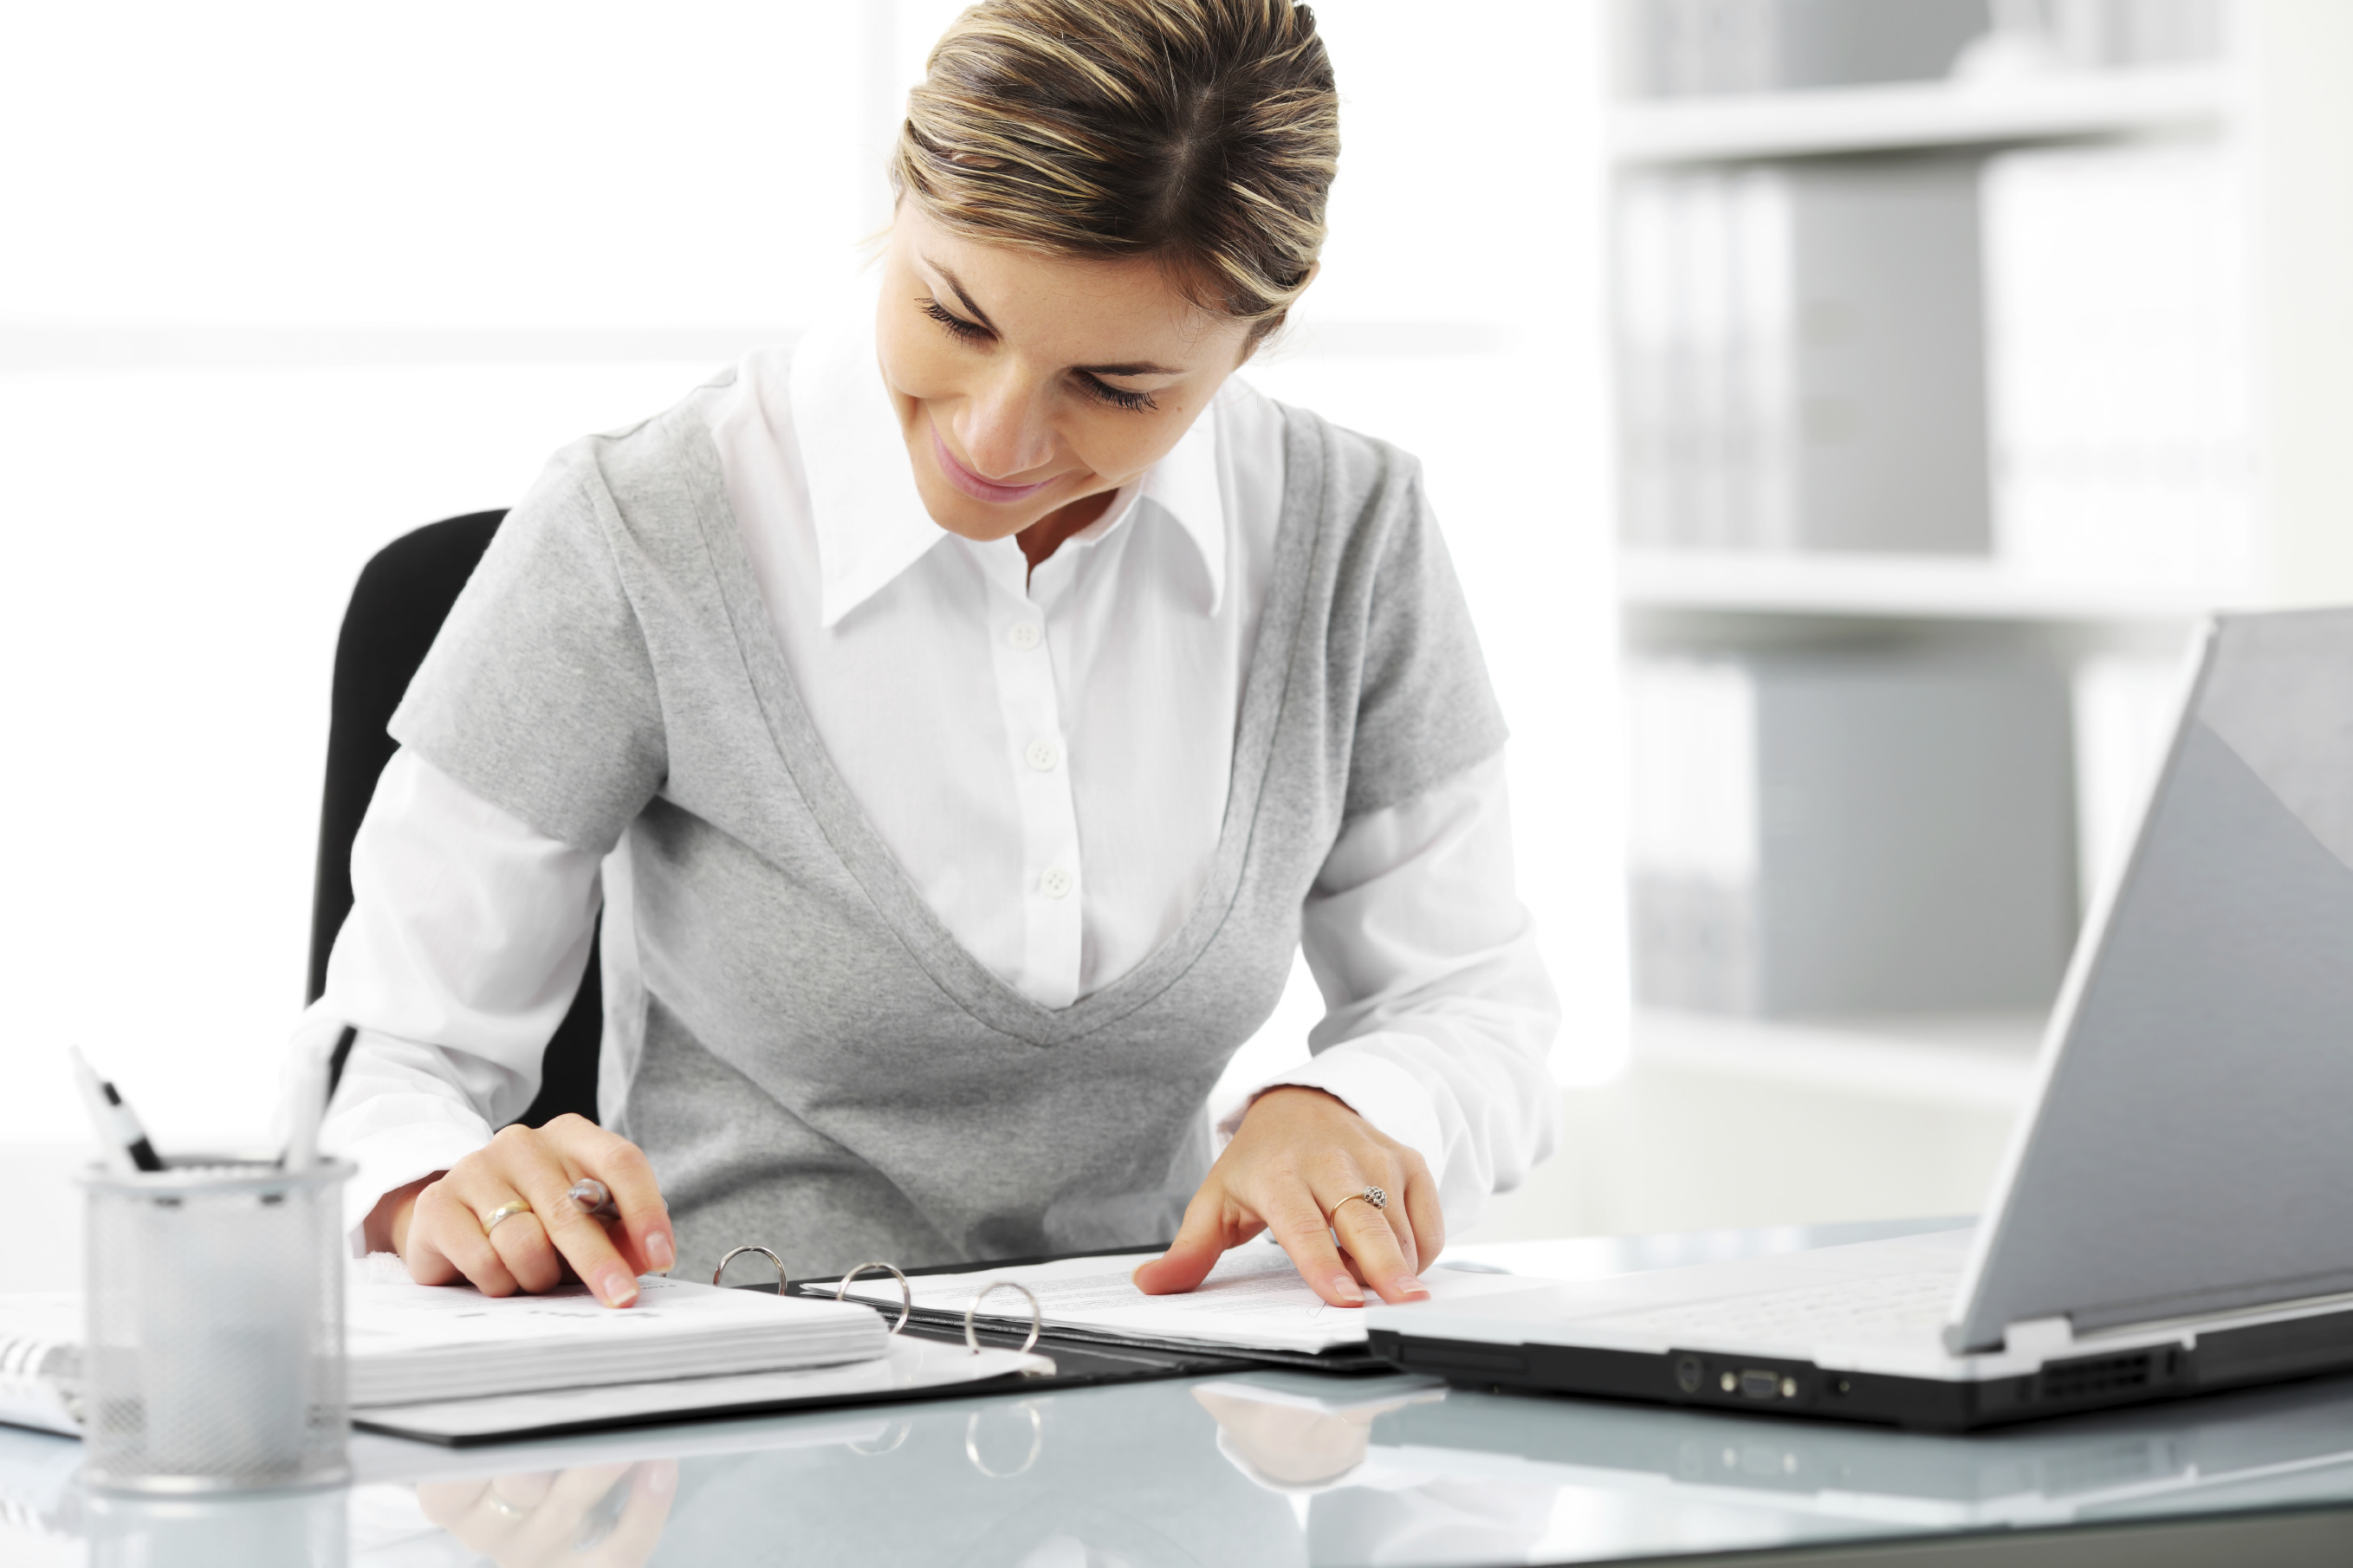 Business woman writing a note at her workplace.